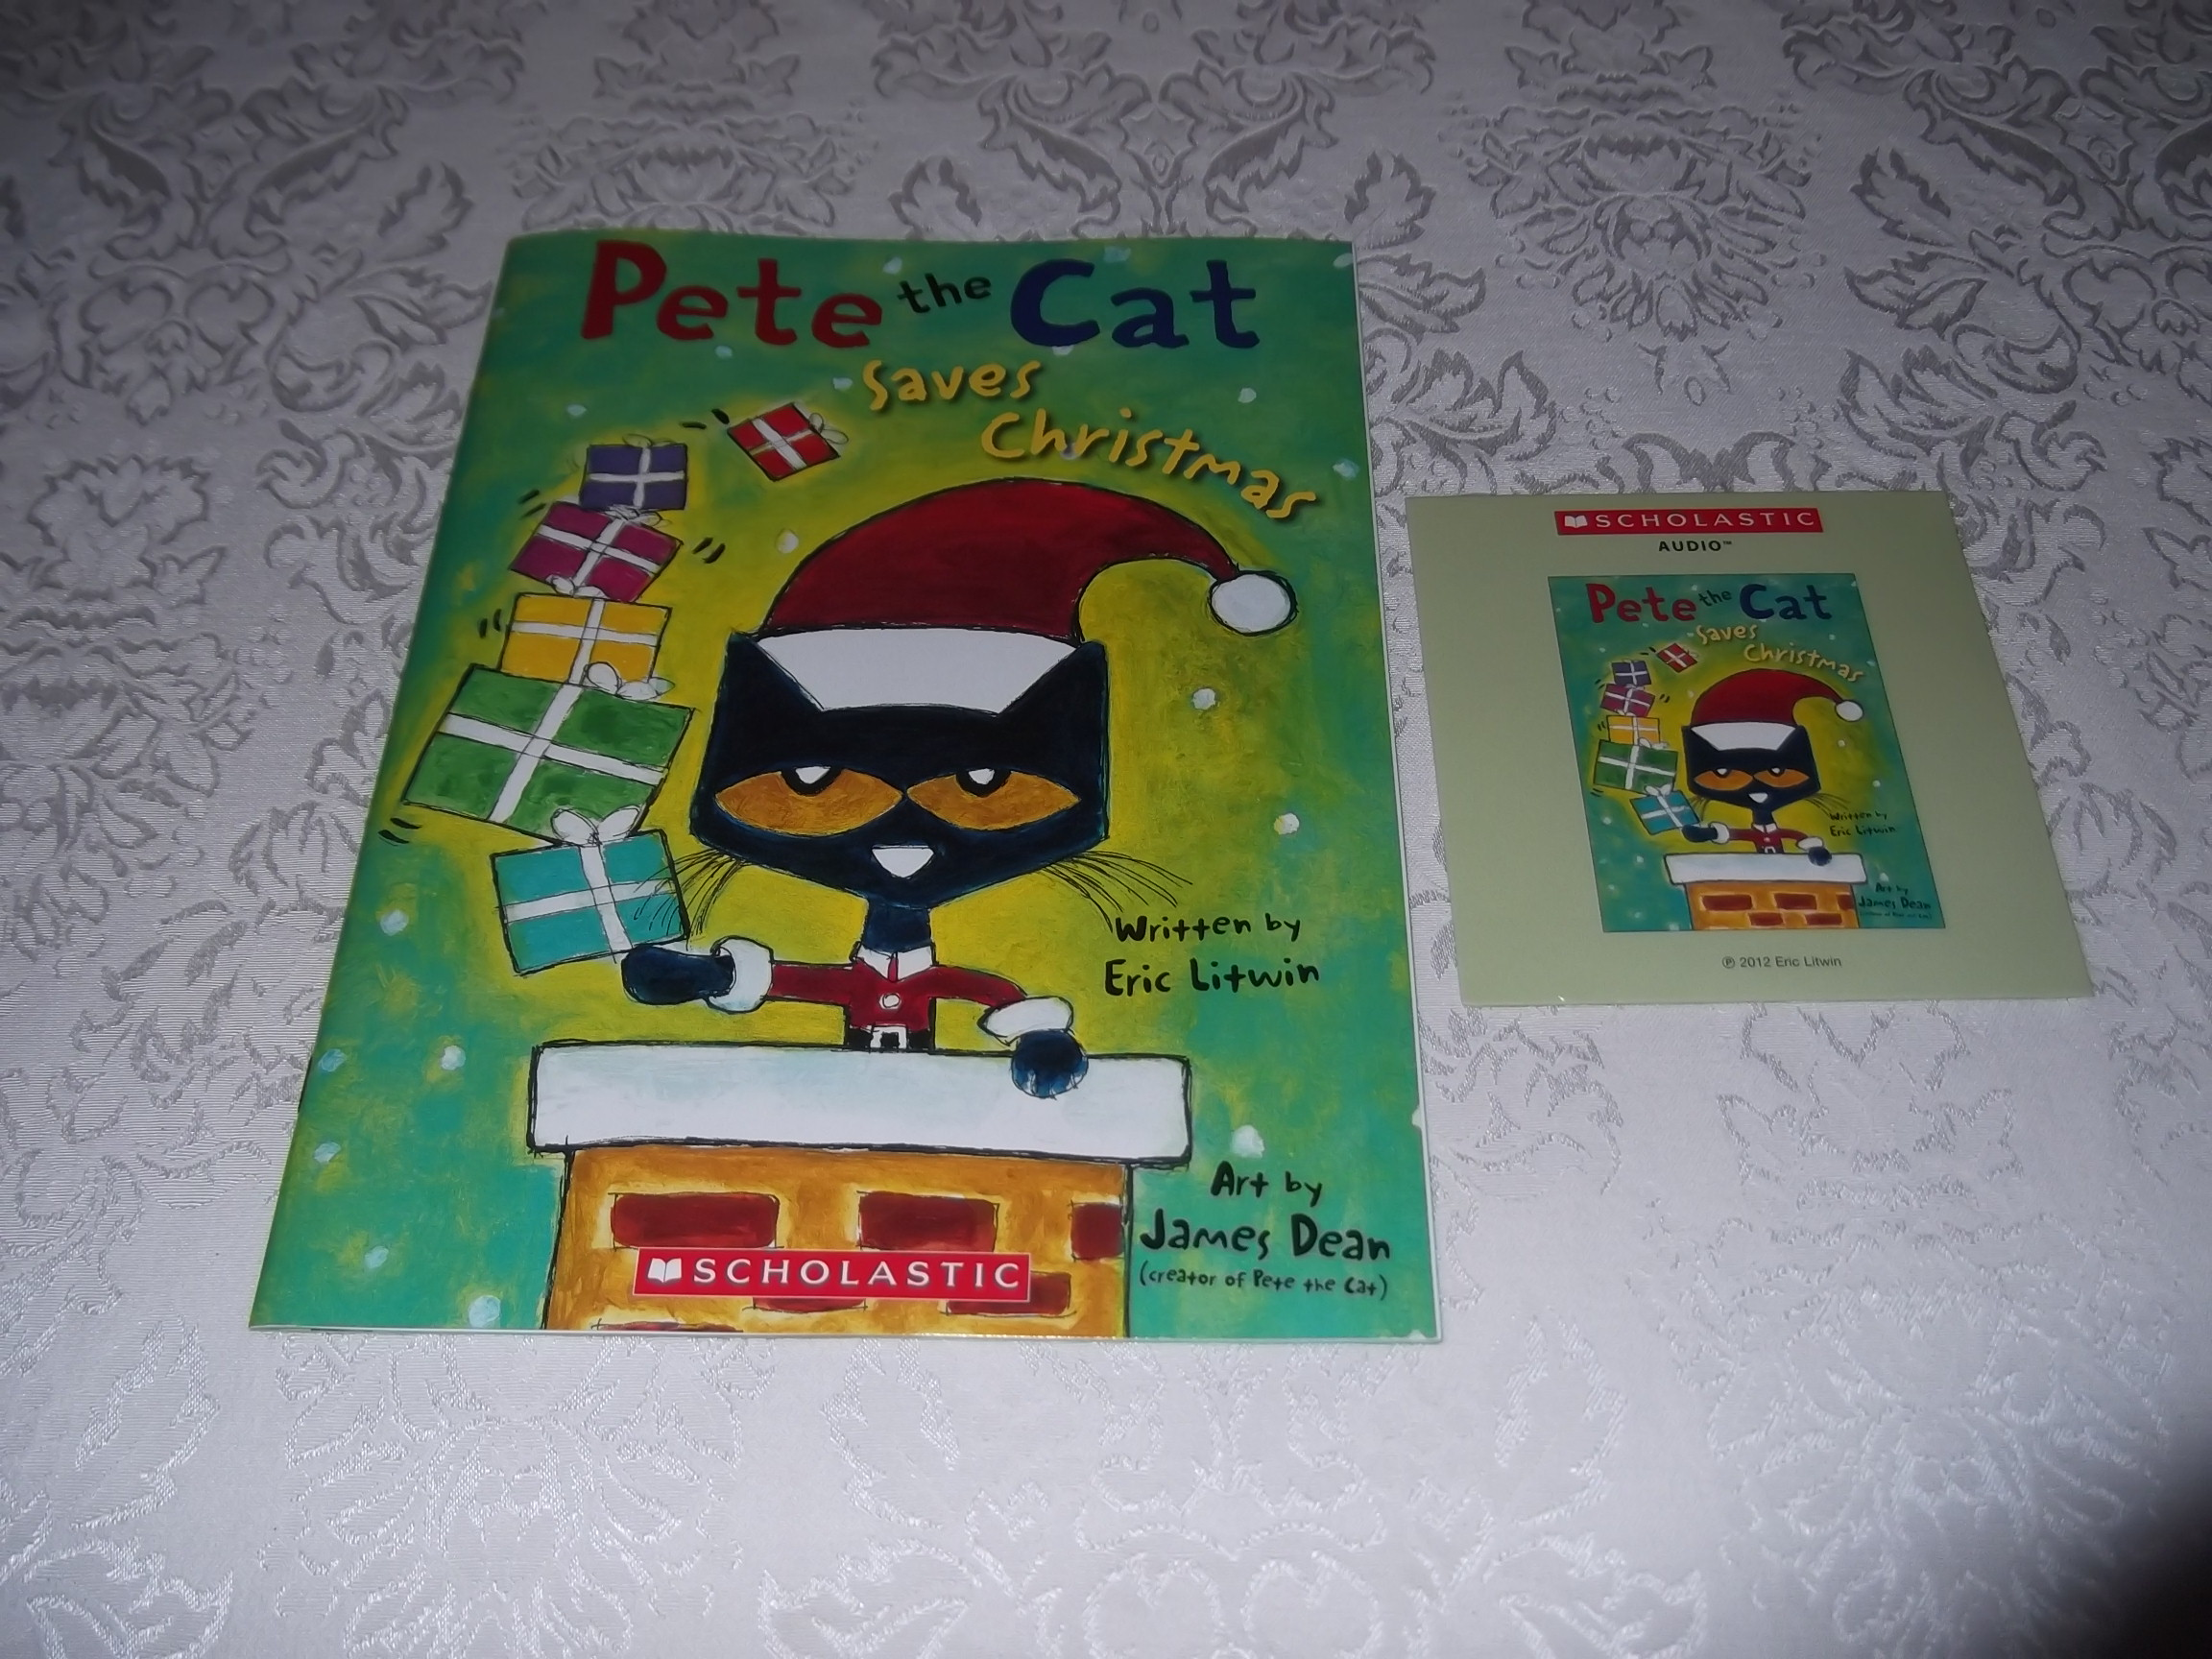 pete the cat saves christmas brand new audio cd and sc eric litwin - Pete The Cat Saves Christmas